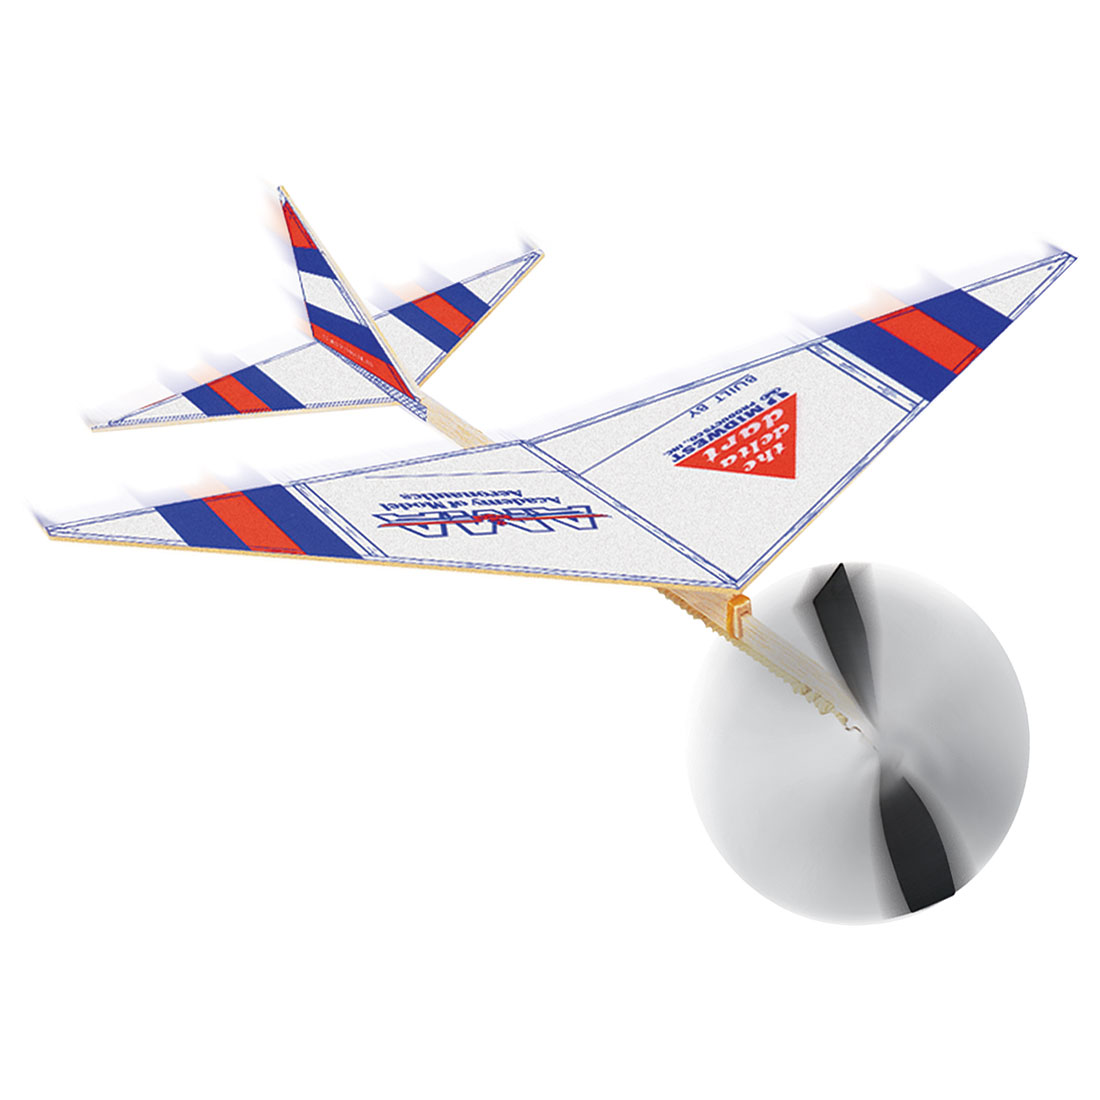 Rubber Band Powered Airplanes 5